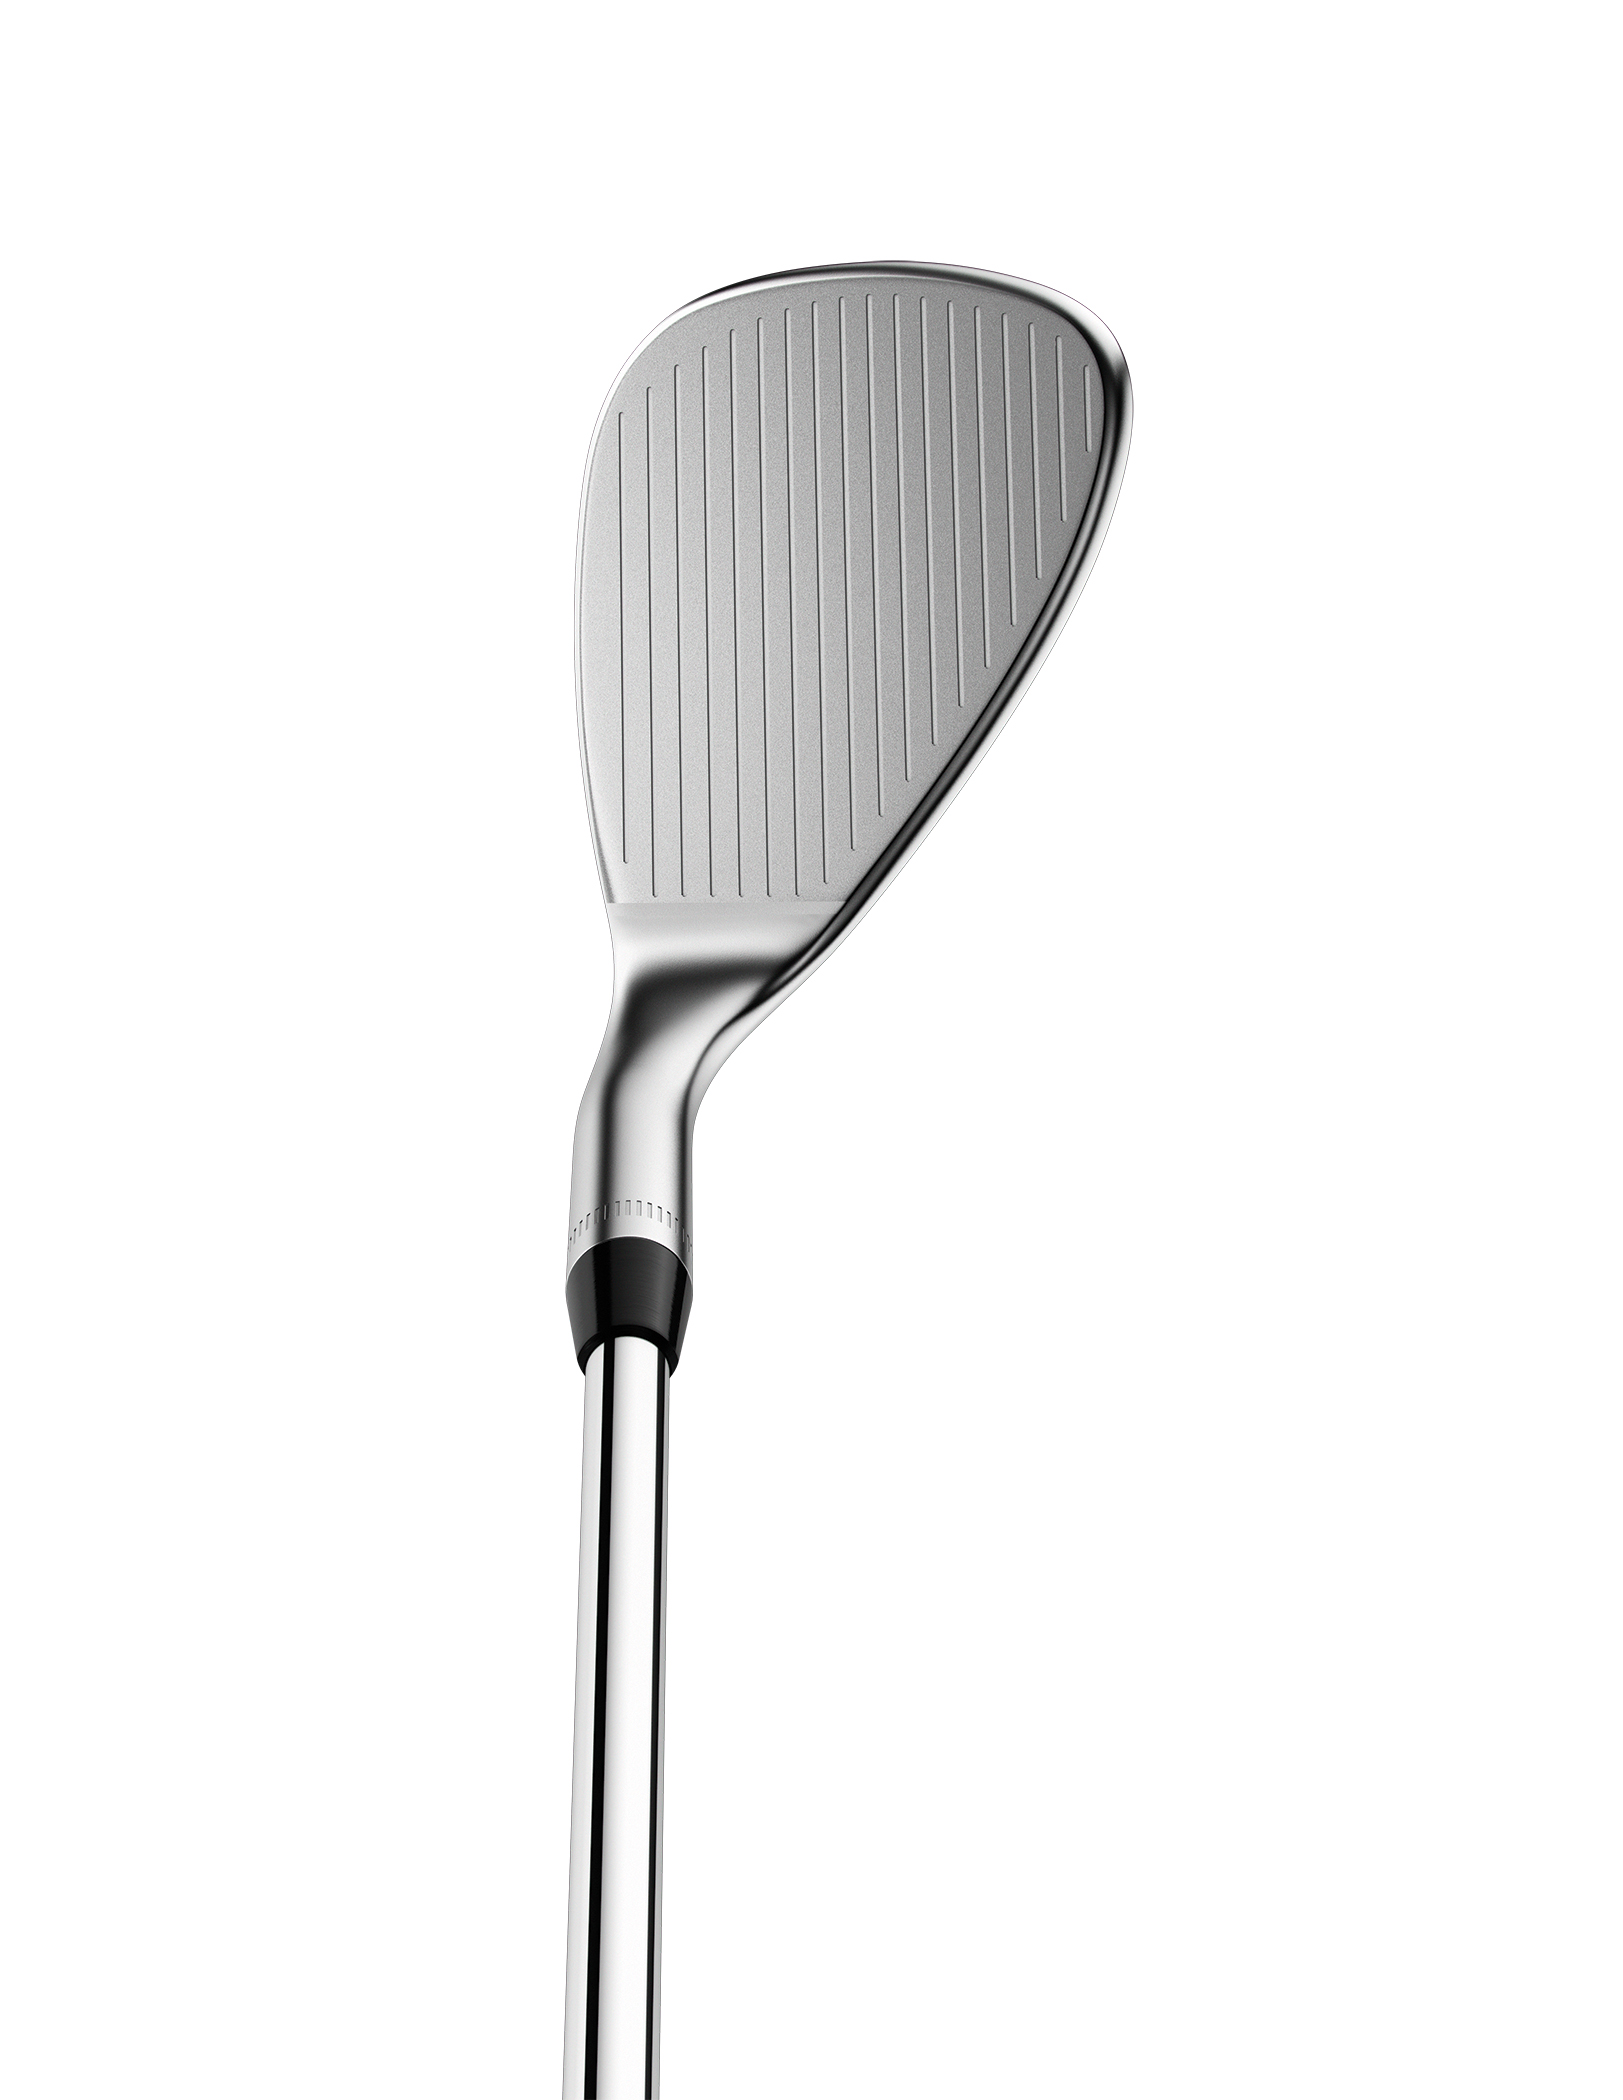 Callaway Mack Daddy PM-Grind Wedges